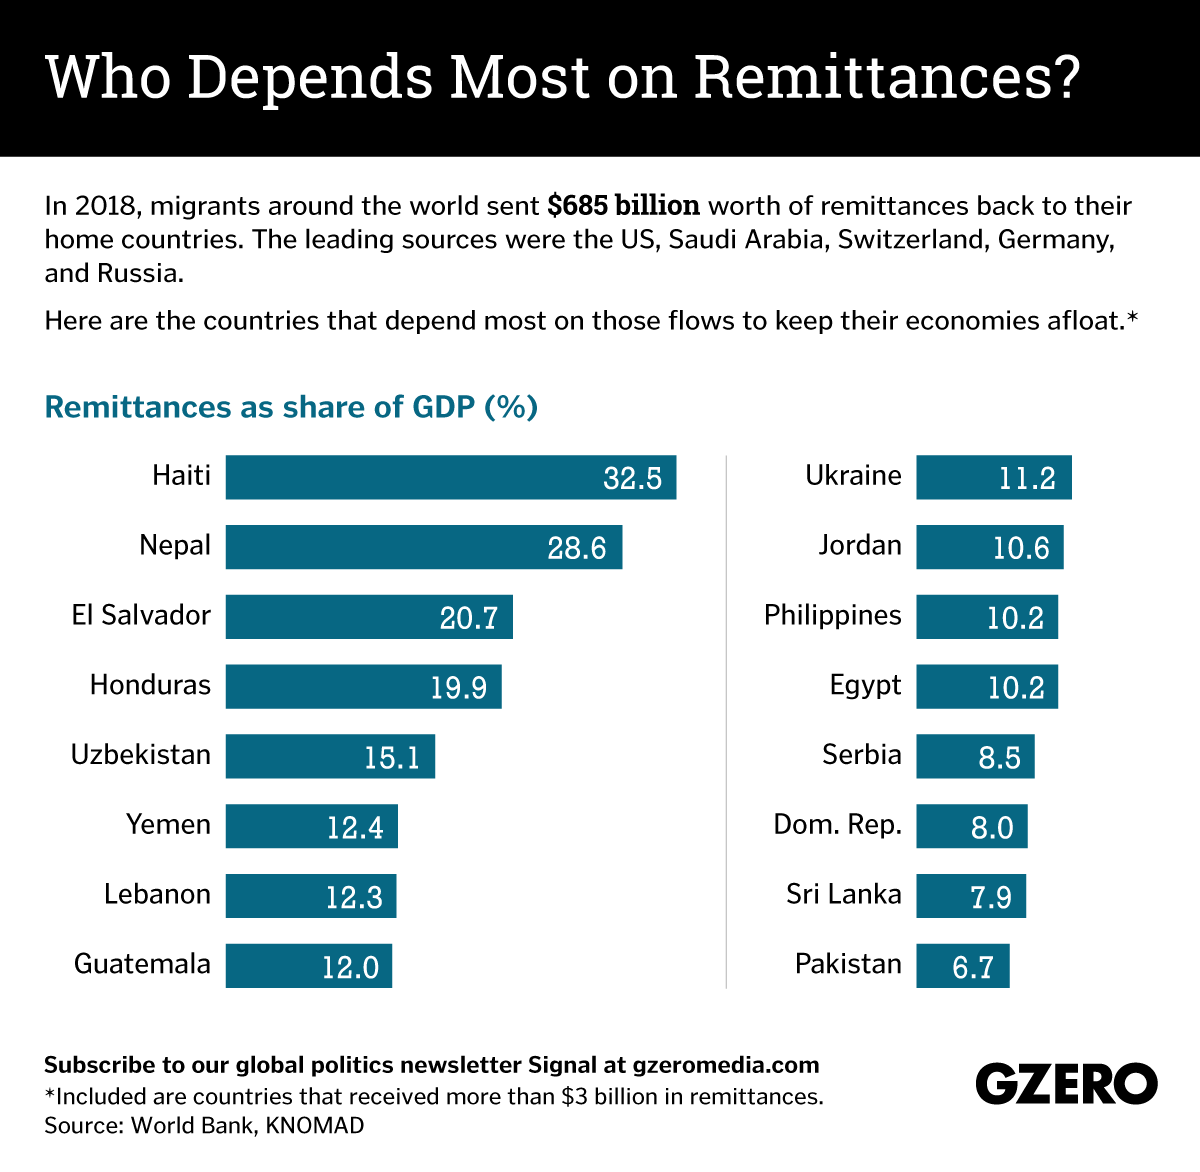 The Graphic Truth: Who depends most on remittances?